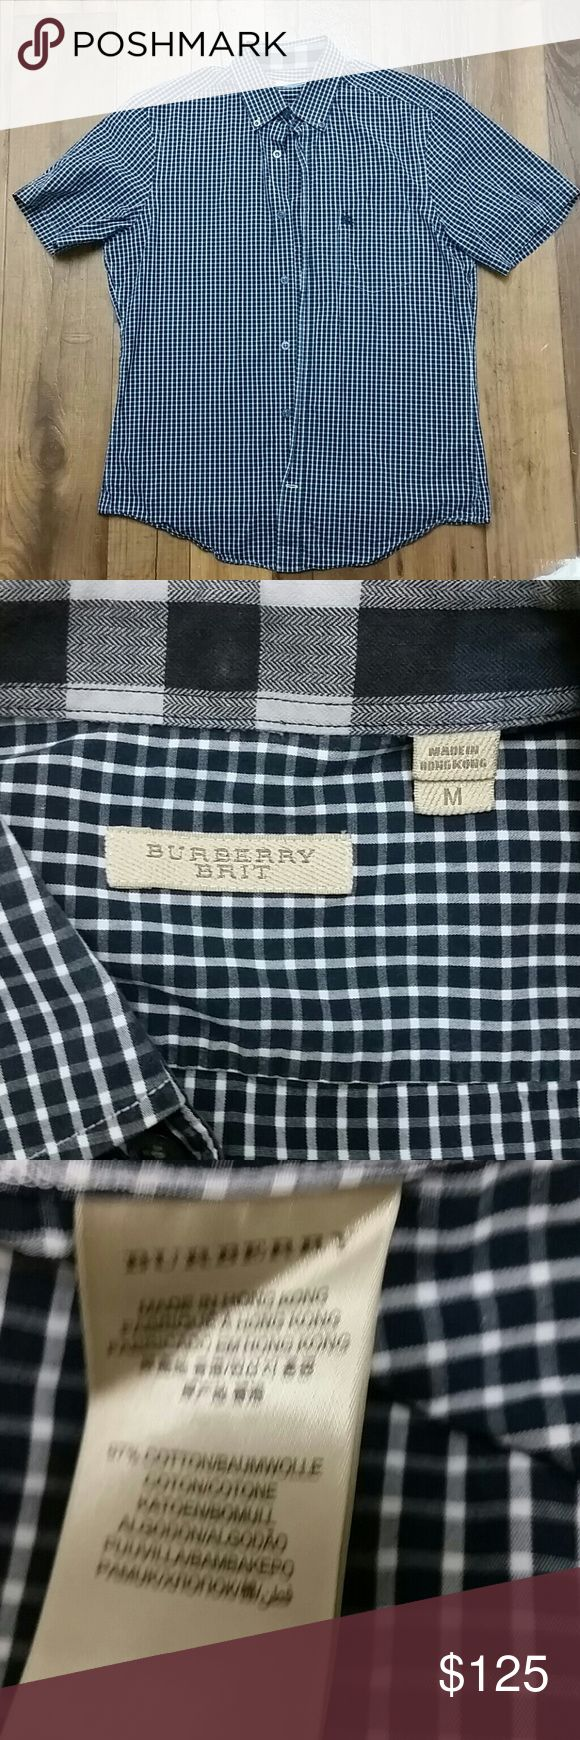 Burberry brit shirt Burberry plaid shirt medium no issues, please be familiar with Burberry sizing.  Authentic shirt Burberry Shirts Casual Button Down Shirts